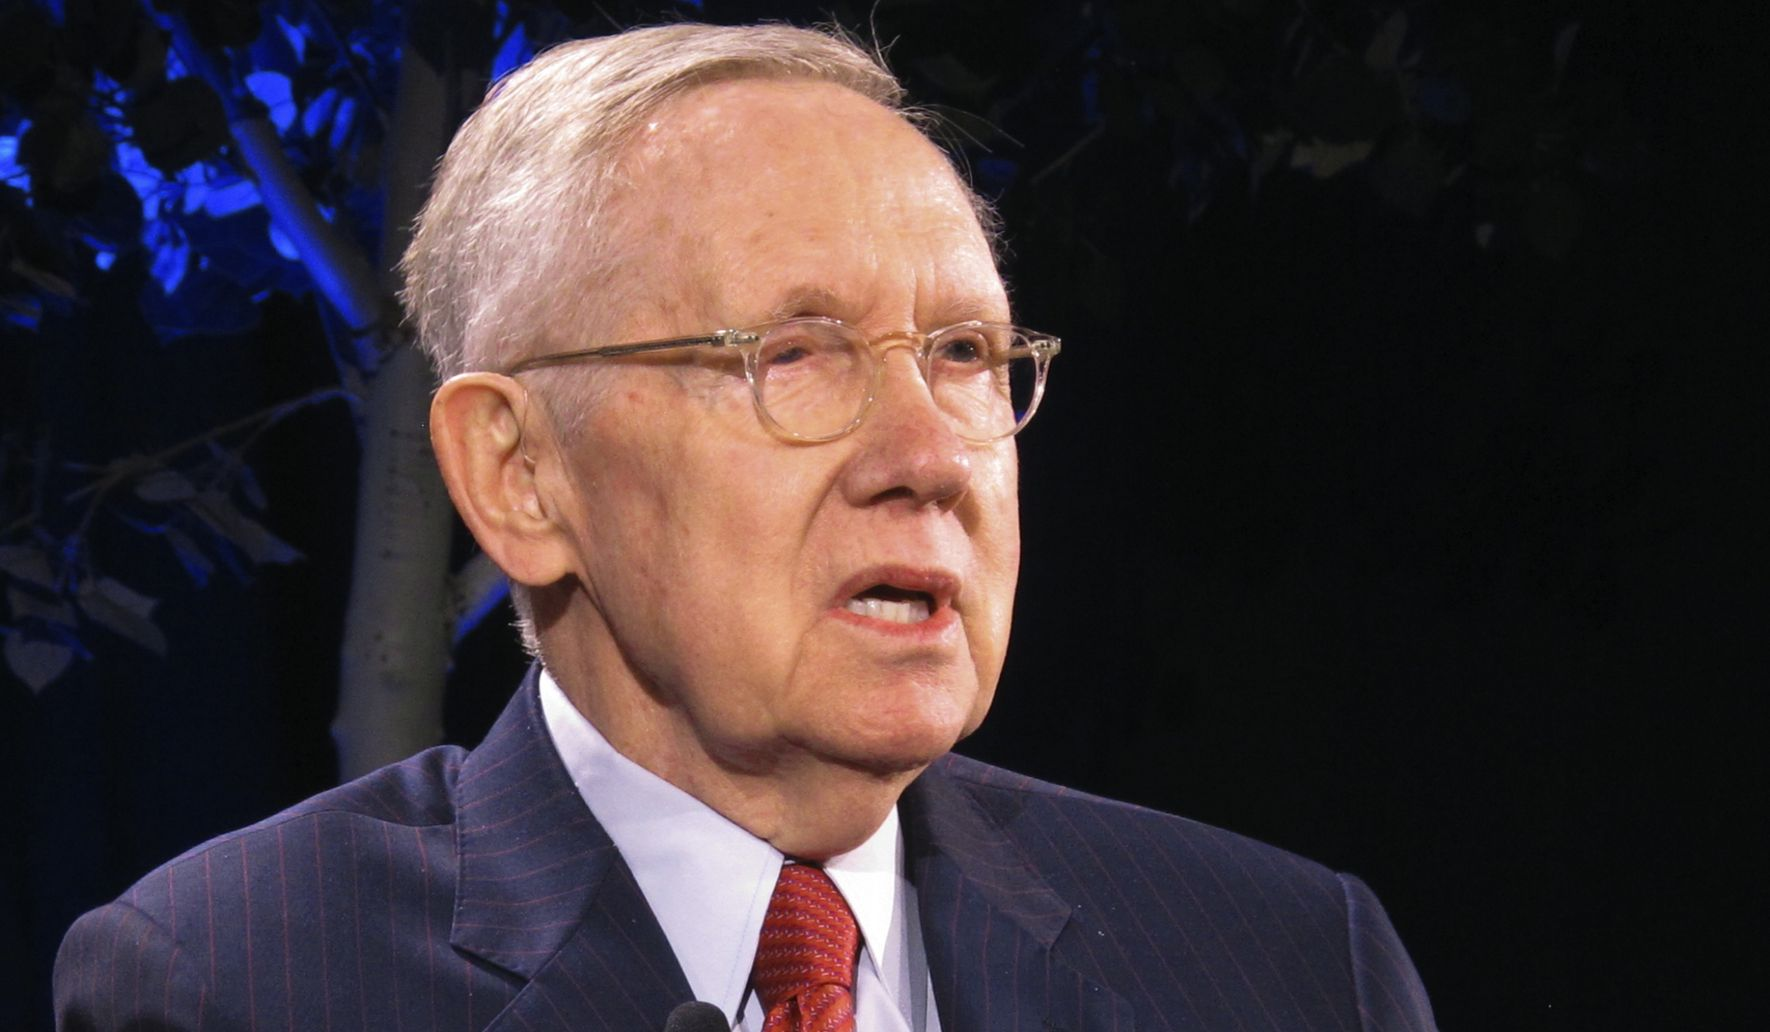 Harry Reid warns 2020 Democratic hopefuls to not underestimate 'very, very smart' Trump